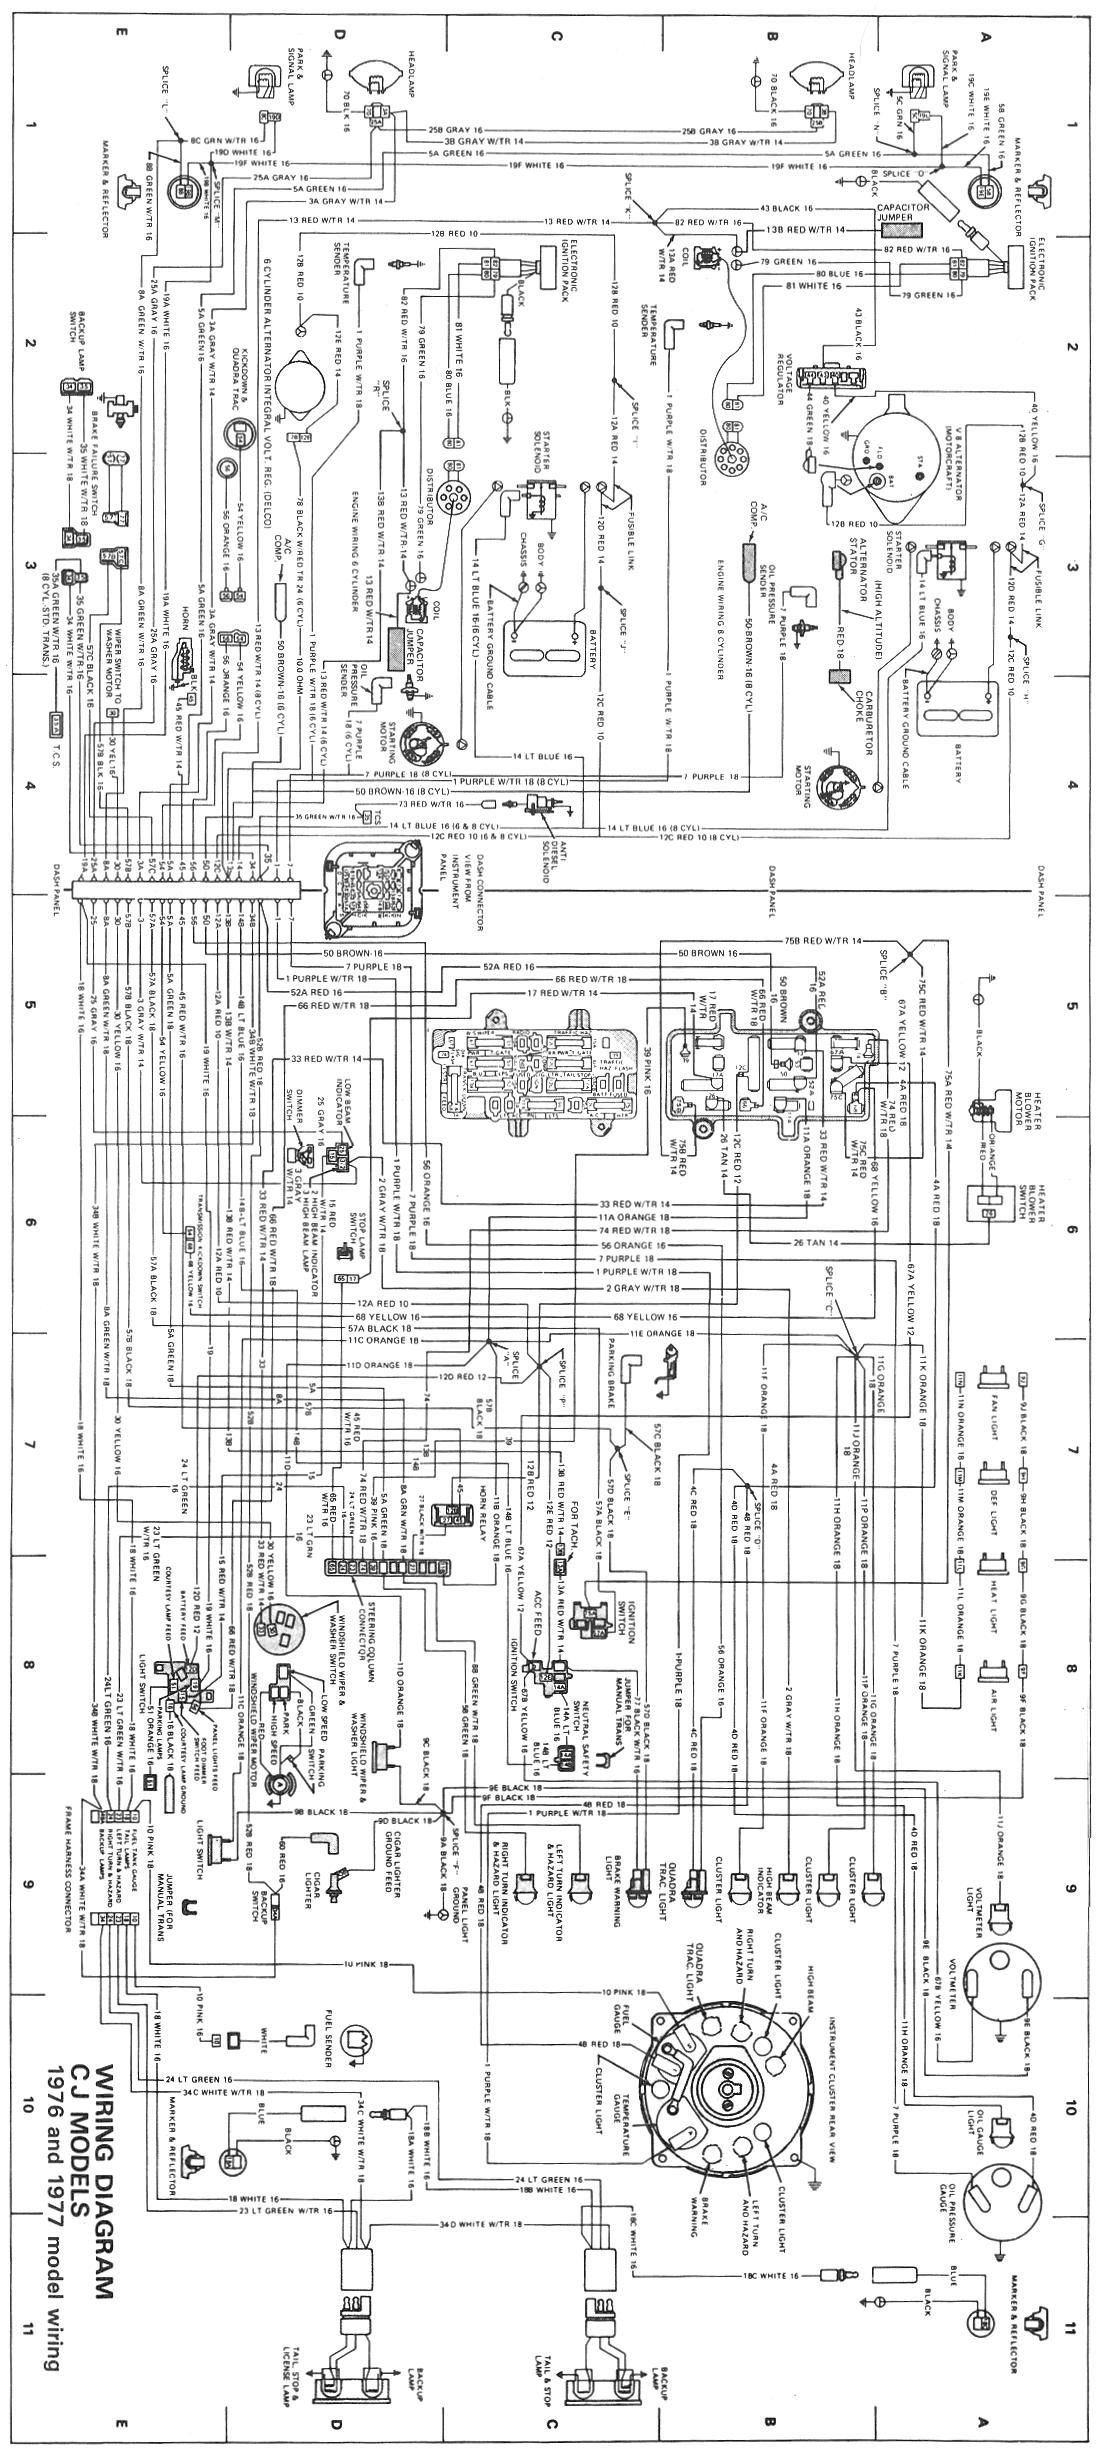 [SCHEMATICS_48DE]  1986 Jeep Cj7 Wiring Diagrams | Wiring Diagram | 1986 Jeep Cj Wiring Diagram |  | Wiring Diagram - AutoScout24